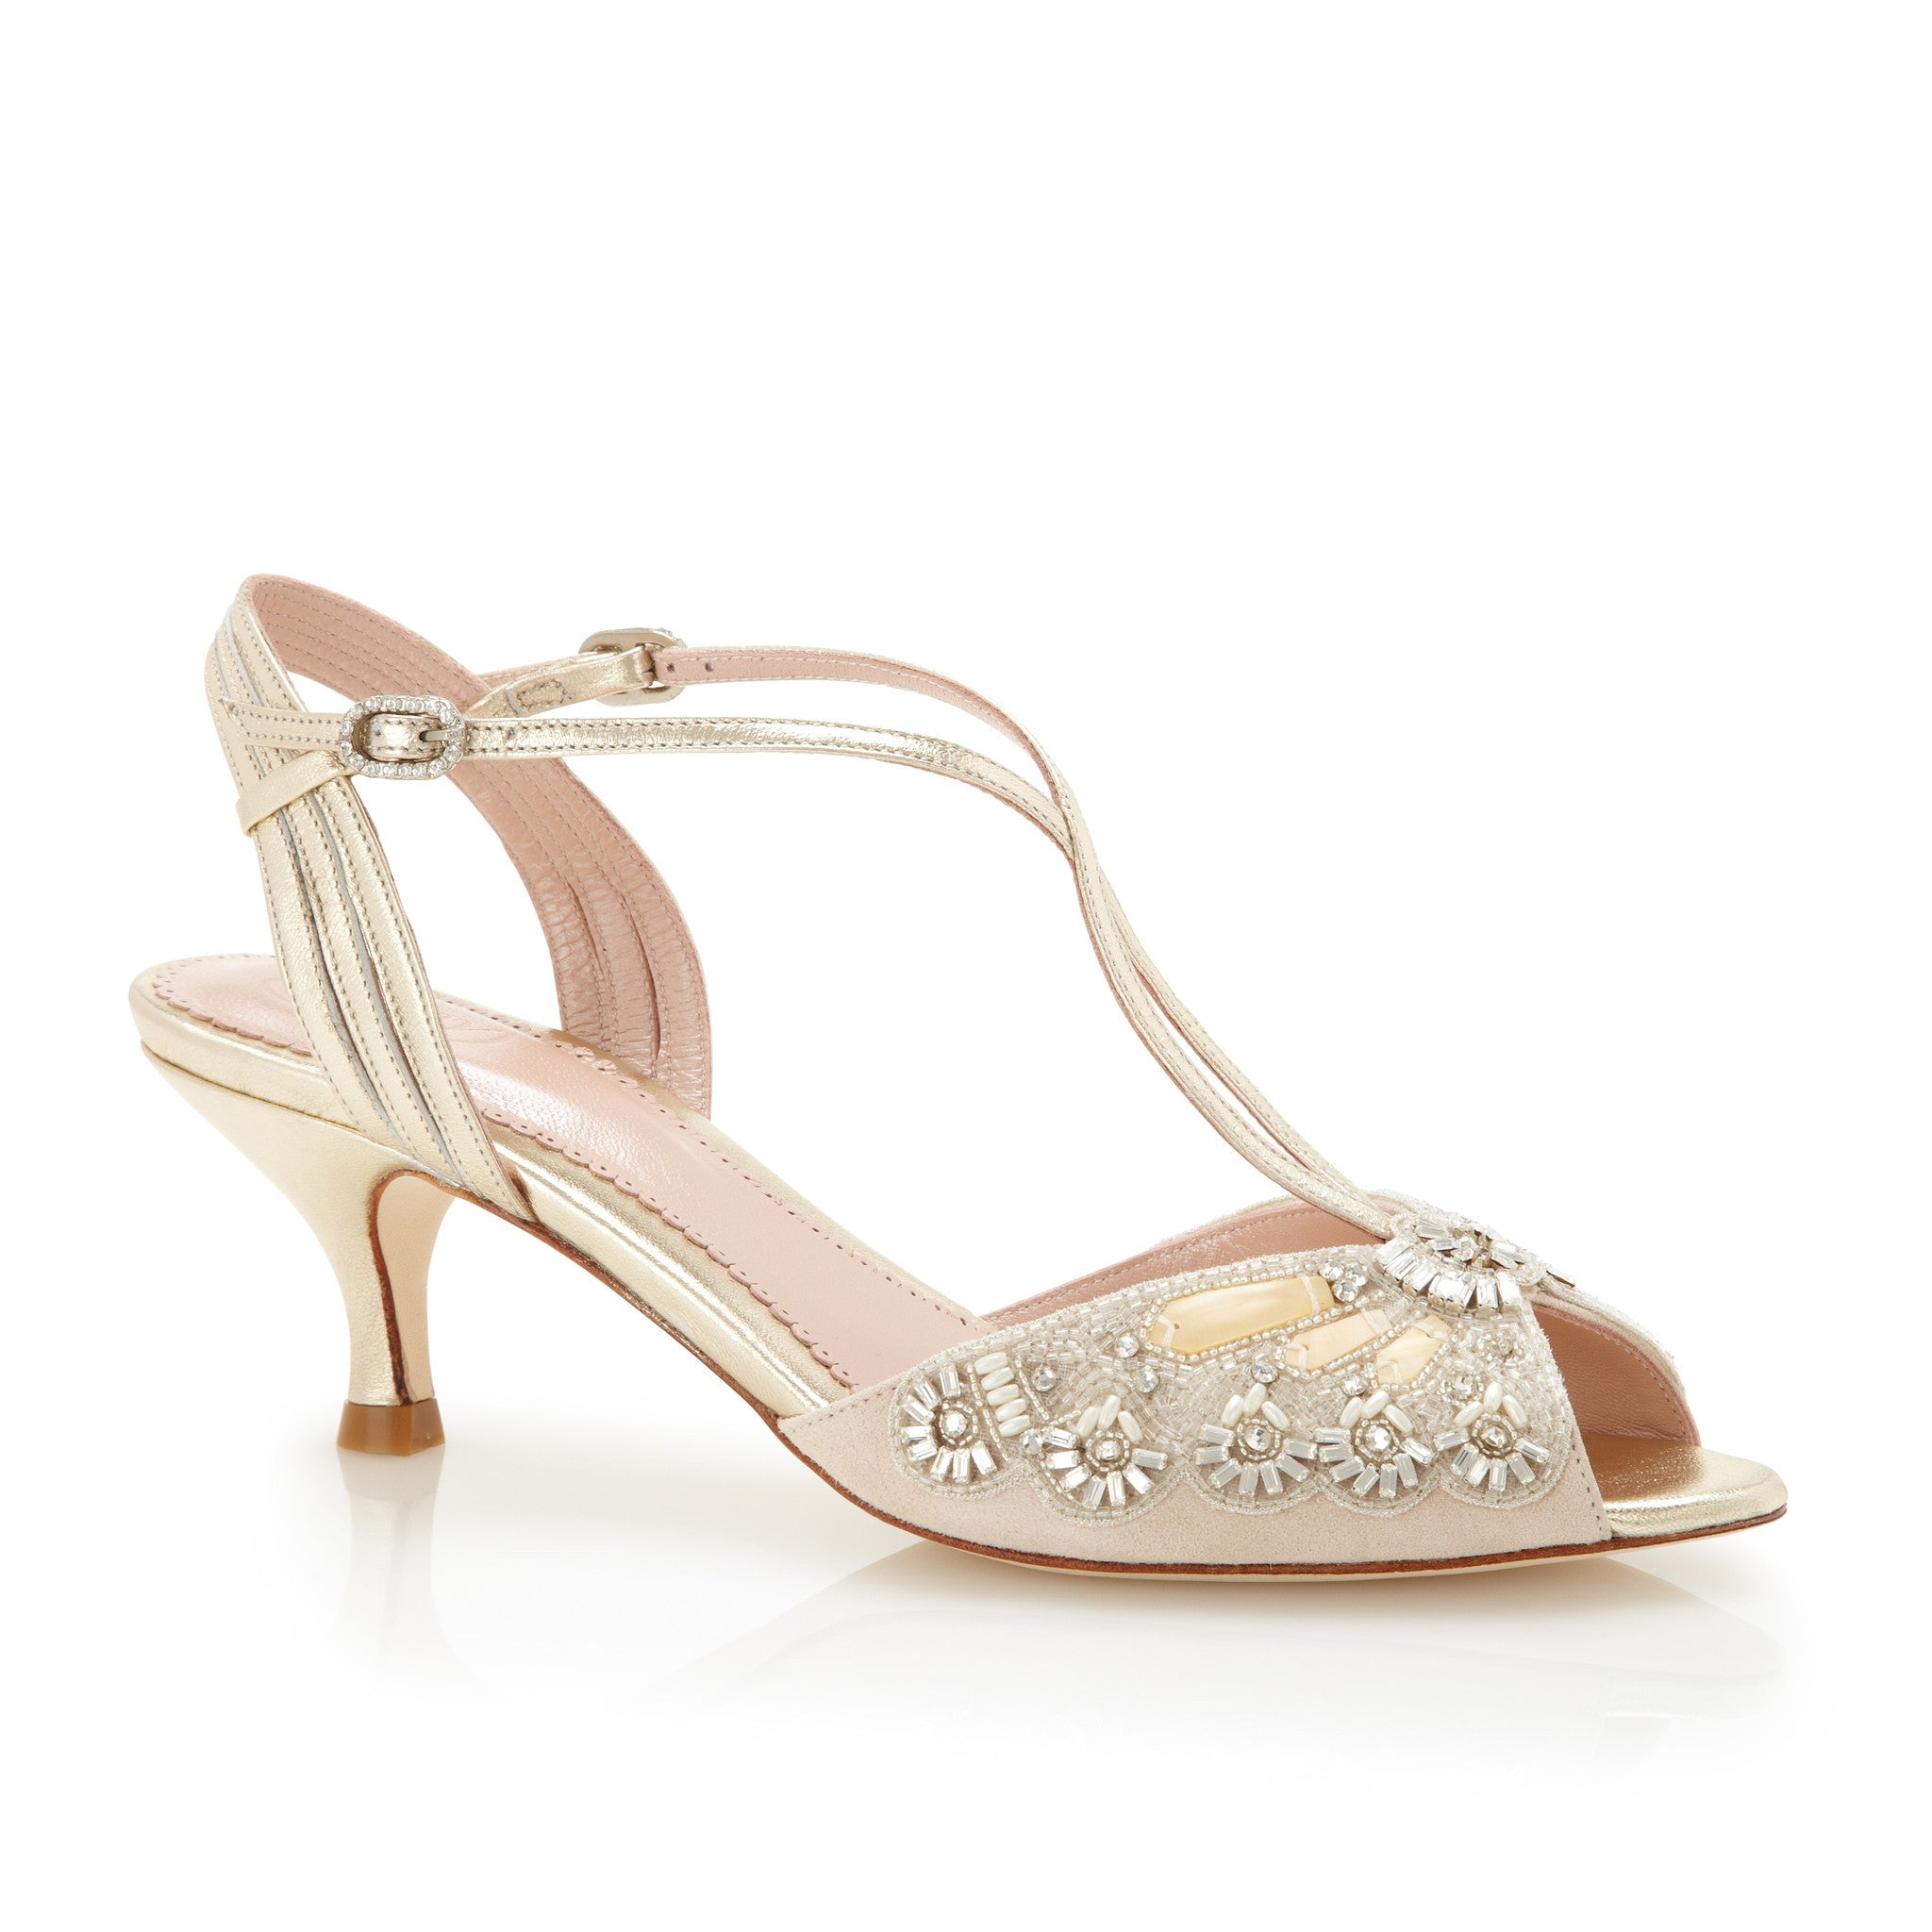 Gold Wedding Shoes Low Heel nT69rbs4